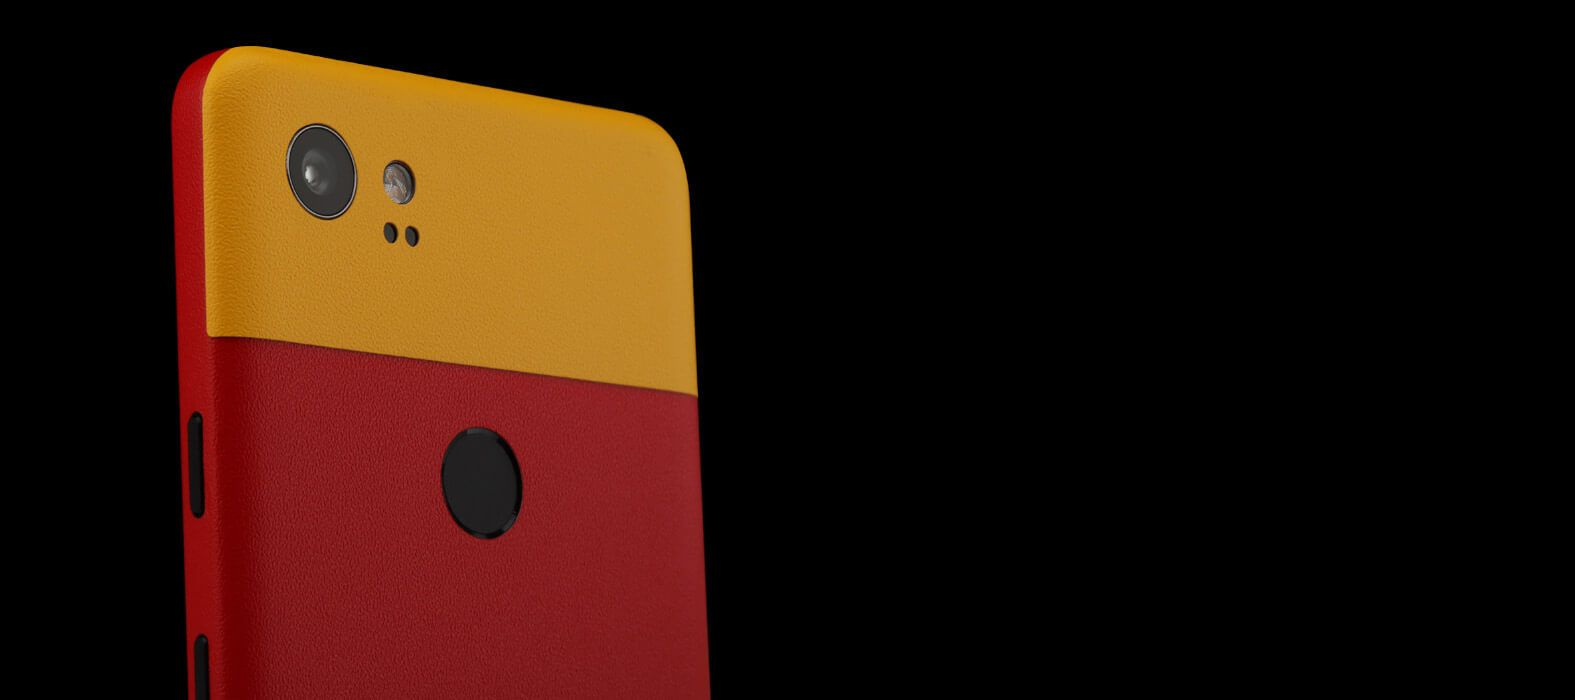 Pixel 2 XL Skins Sandstone Red Split Wraps & Decals